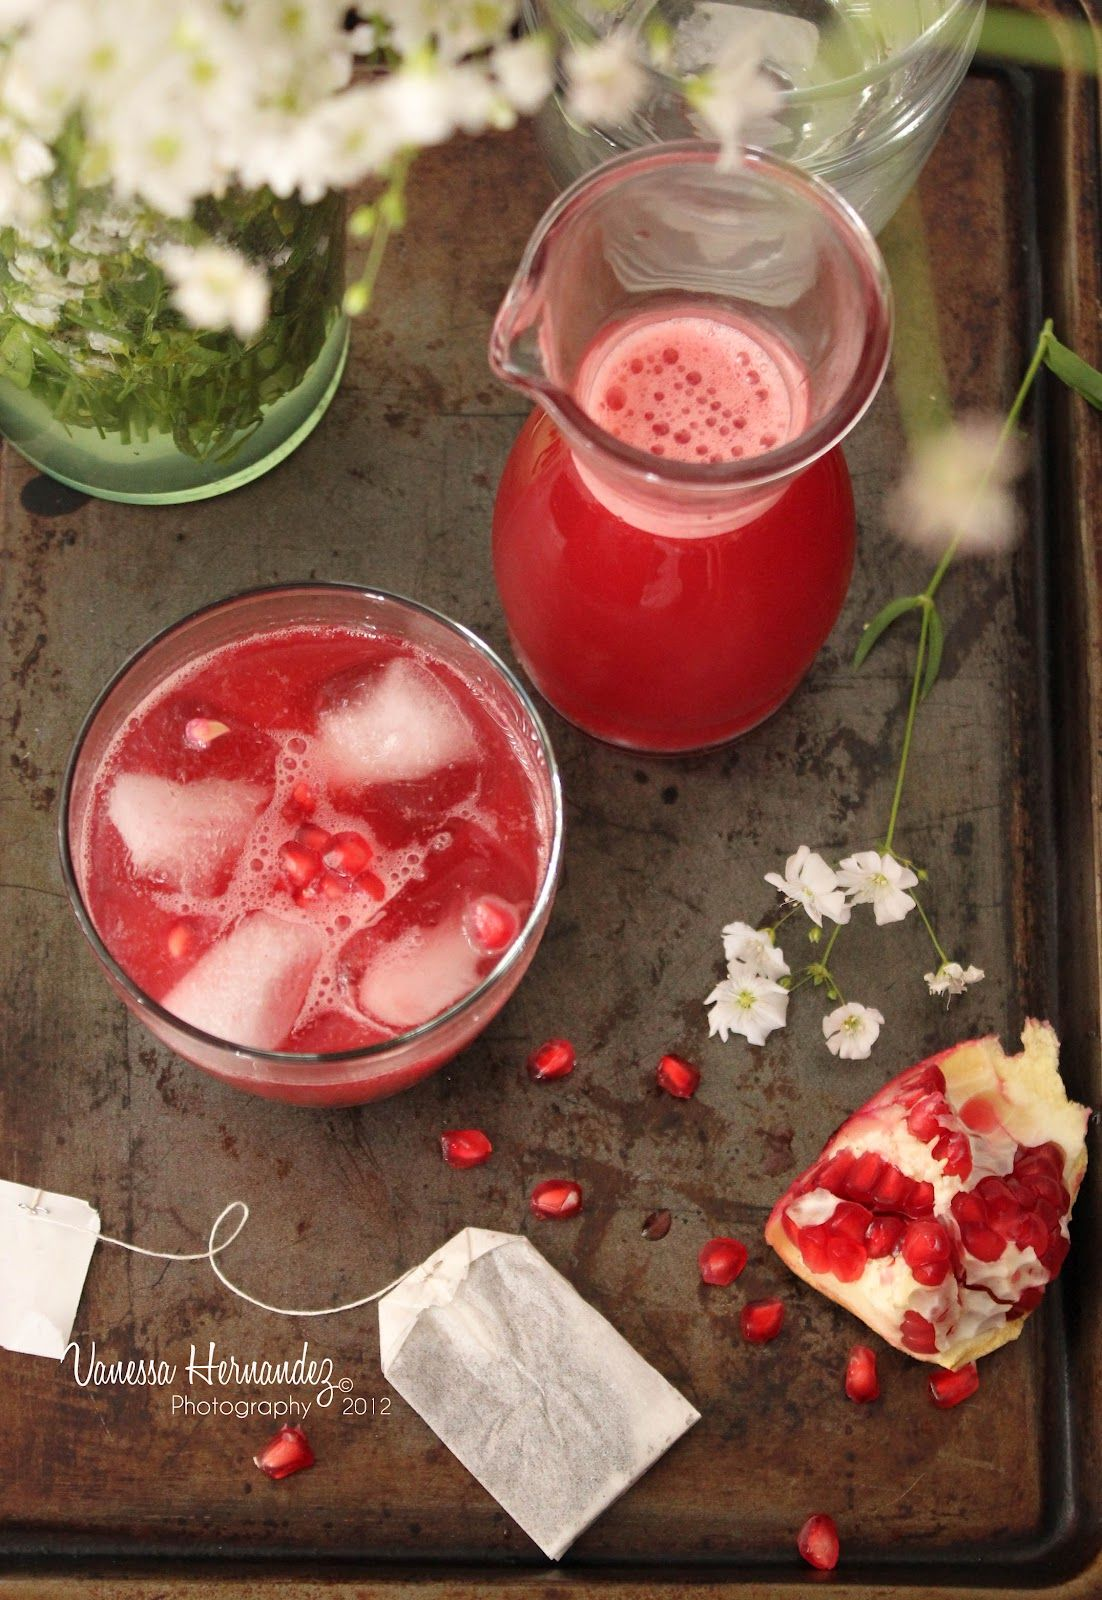 Vanessa Hernandez Cooking And Photography Pomegranate And Hibiscus Tea Tea Infusion Recipes Hot Chocolate Coffee Hibiscus Tea